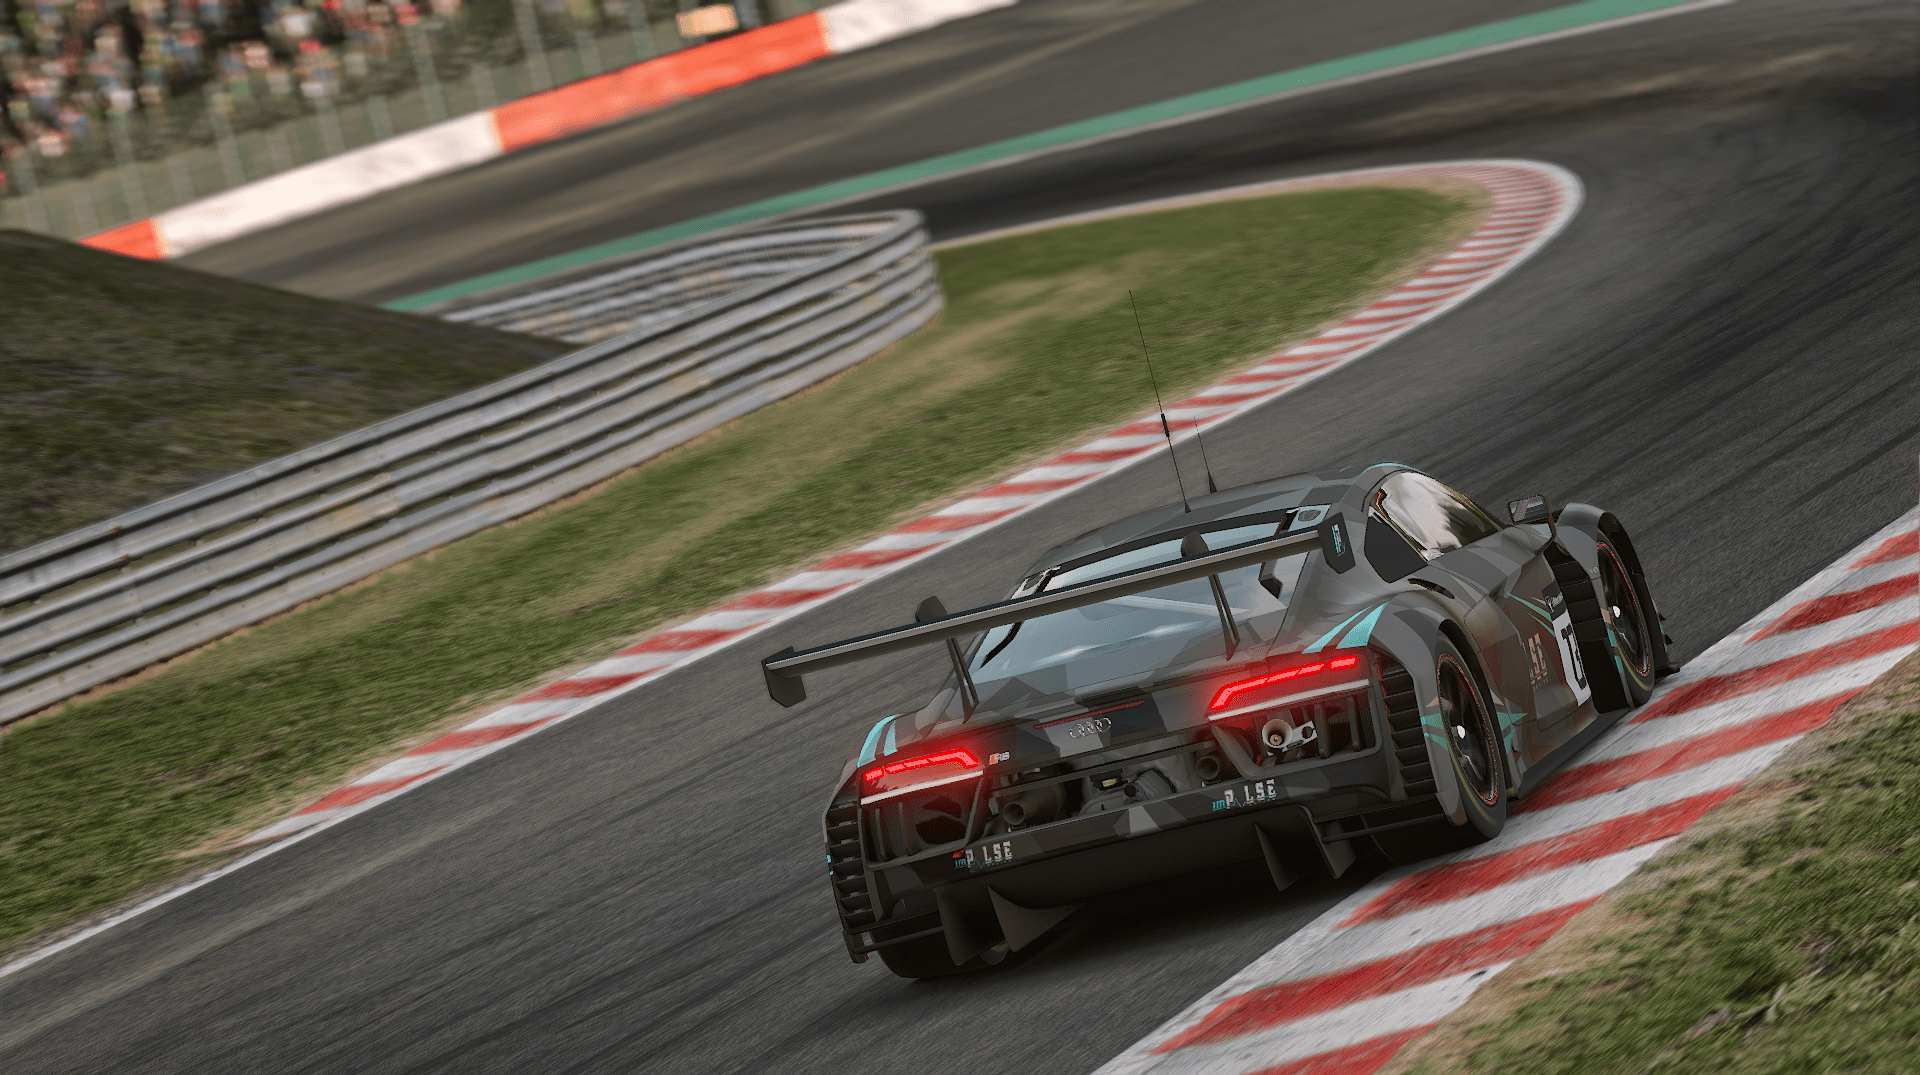 Audi GT3 24h of Spa Puhon from the Back